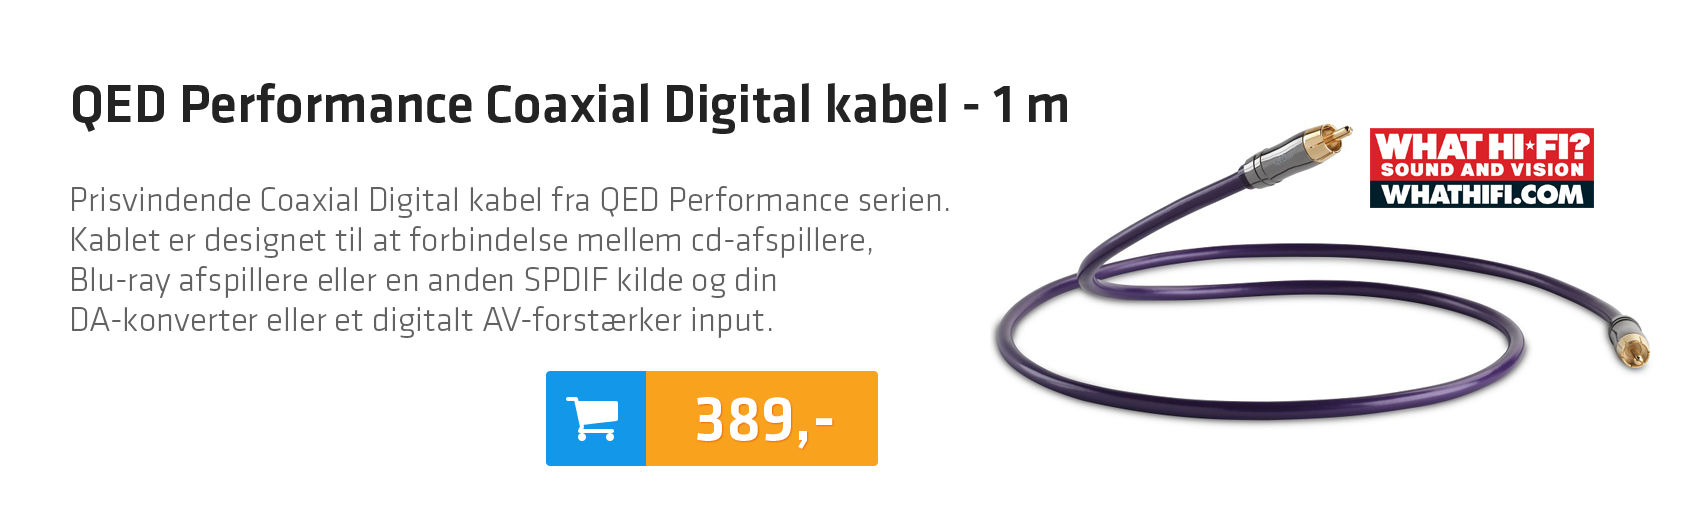 QED Performance Coaxial Digital kabel - 1 m